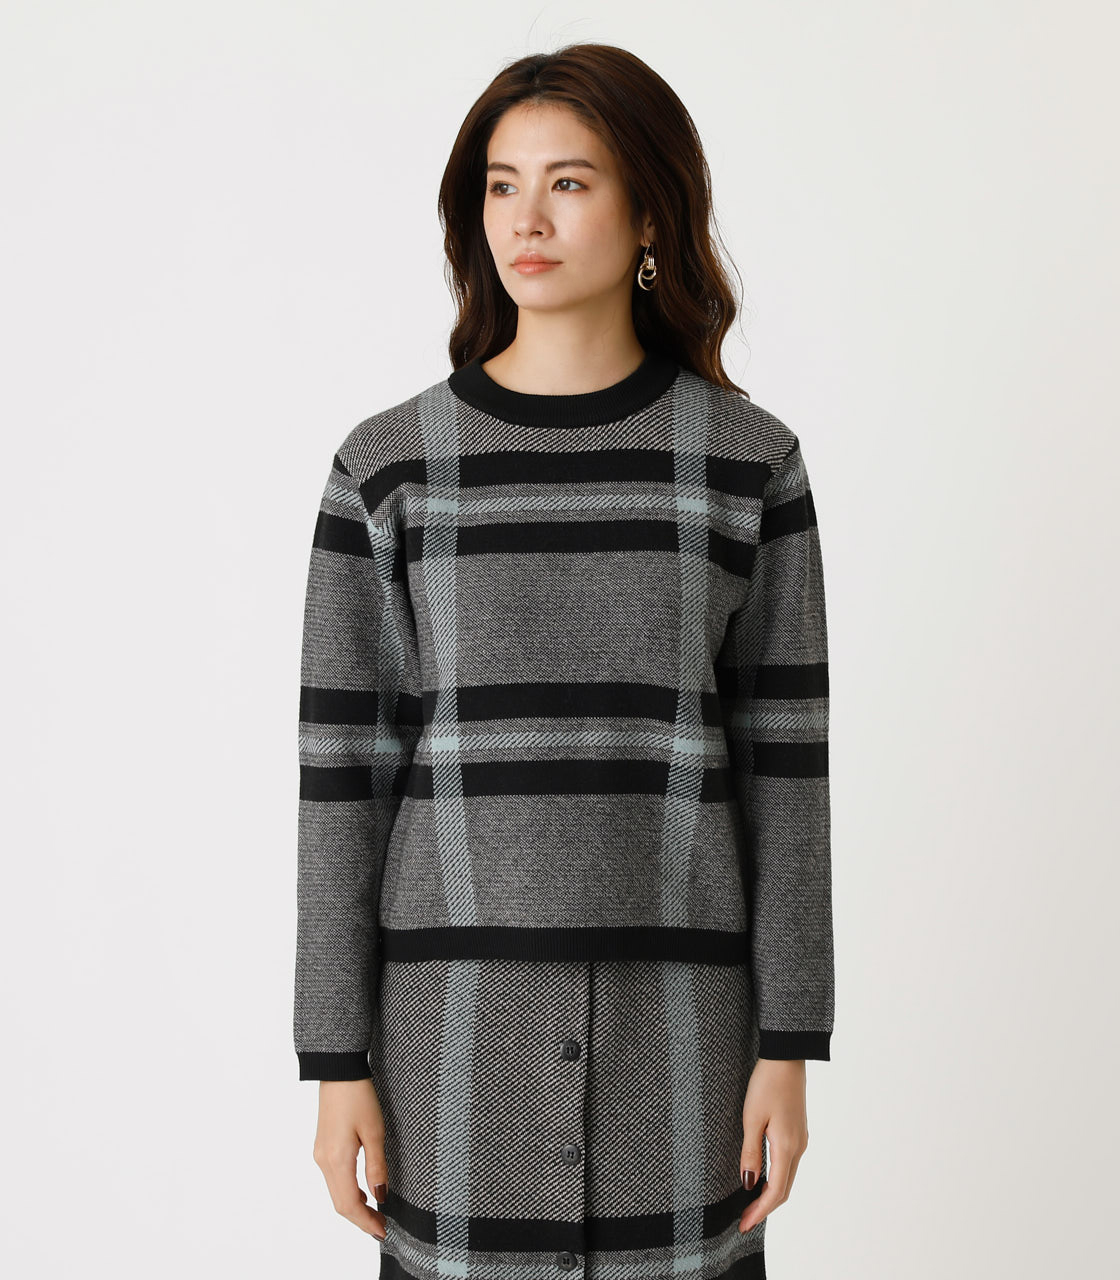 BIG CHECK KNIT TOPS/ビッグチェックニットトップス 詳細画像 柄BLK 5